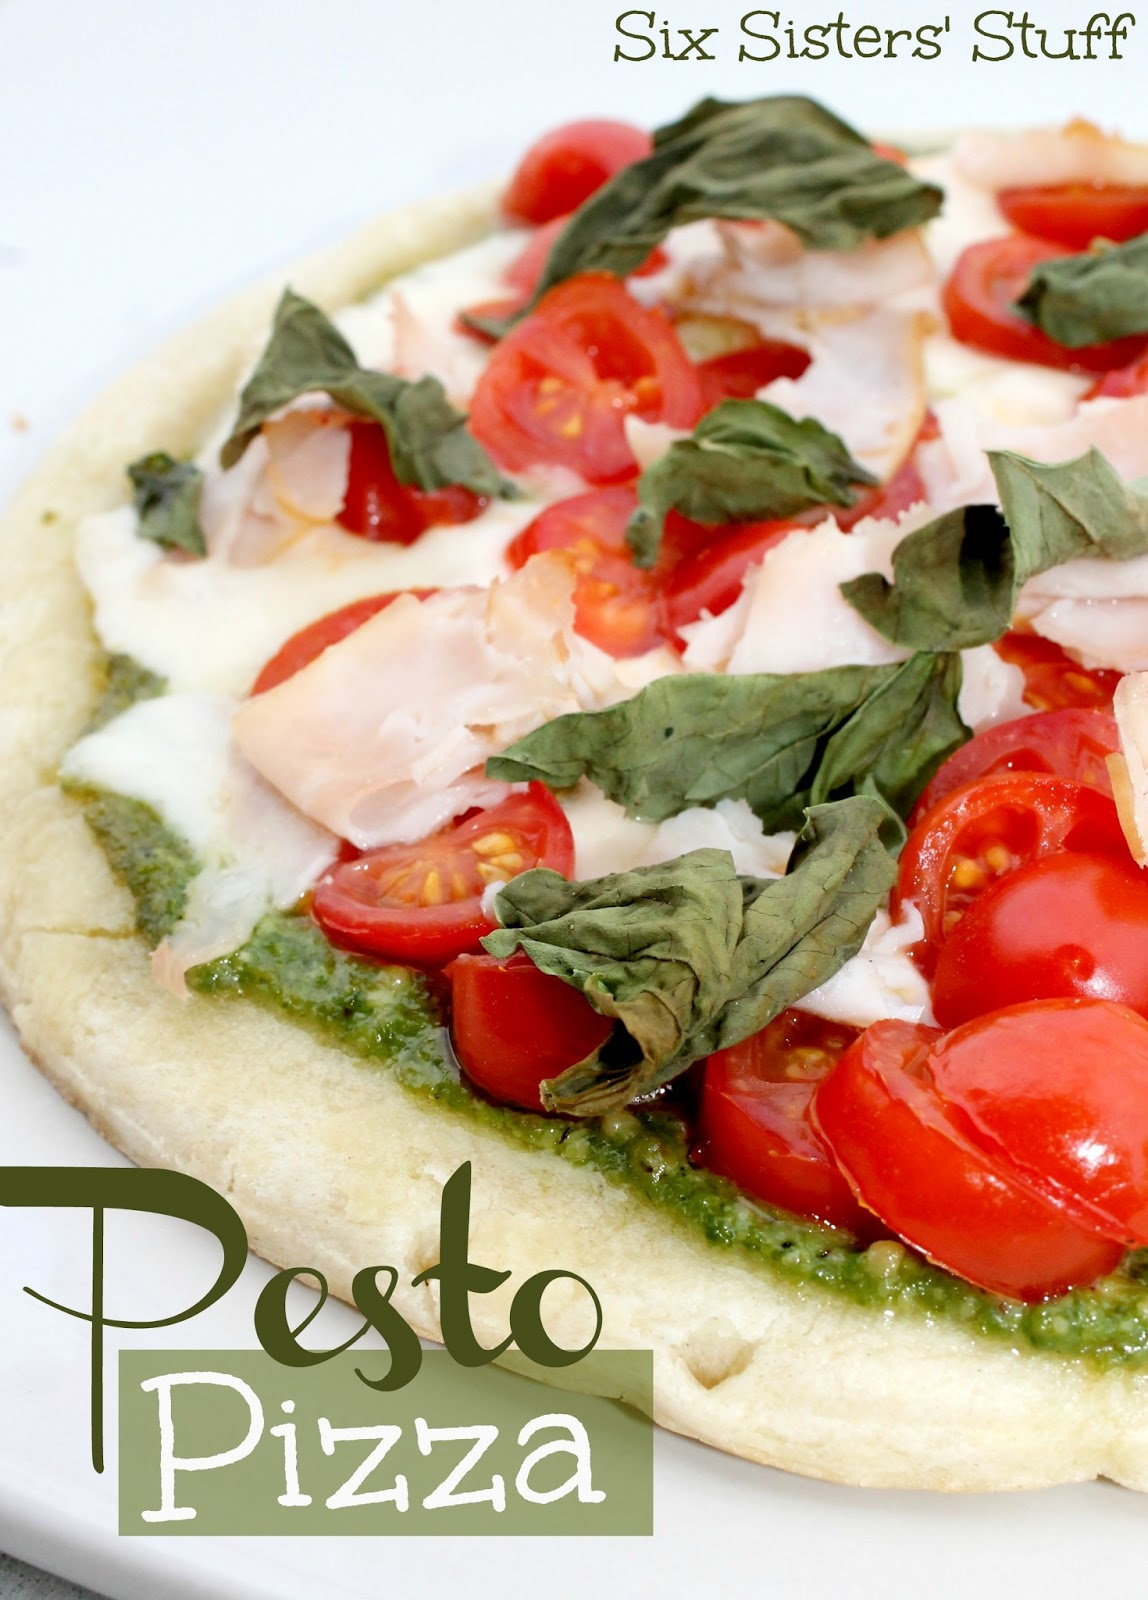 Fresh Pesto Pizza | Six Sisters' Stuff